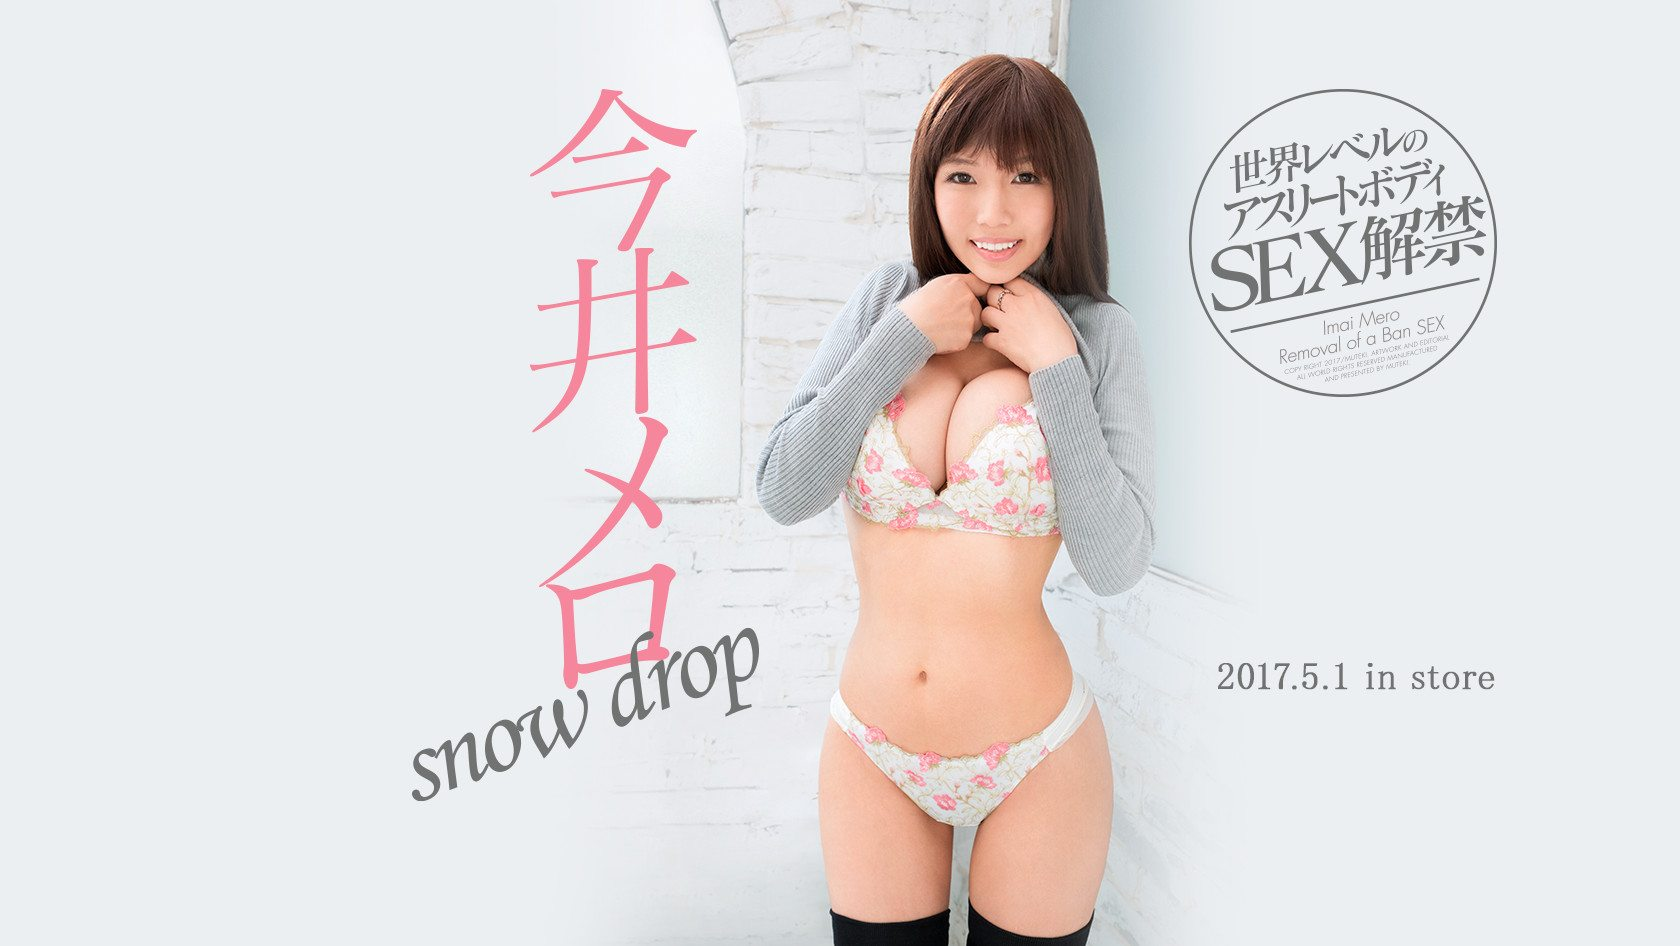 AV label Muteki released the porn debut of ex-Olympic snowboarder Melo Imai on May 1